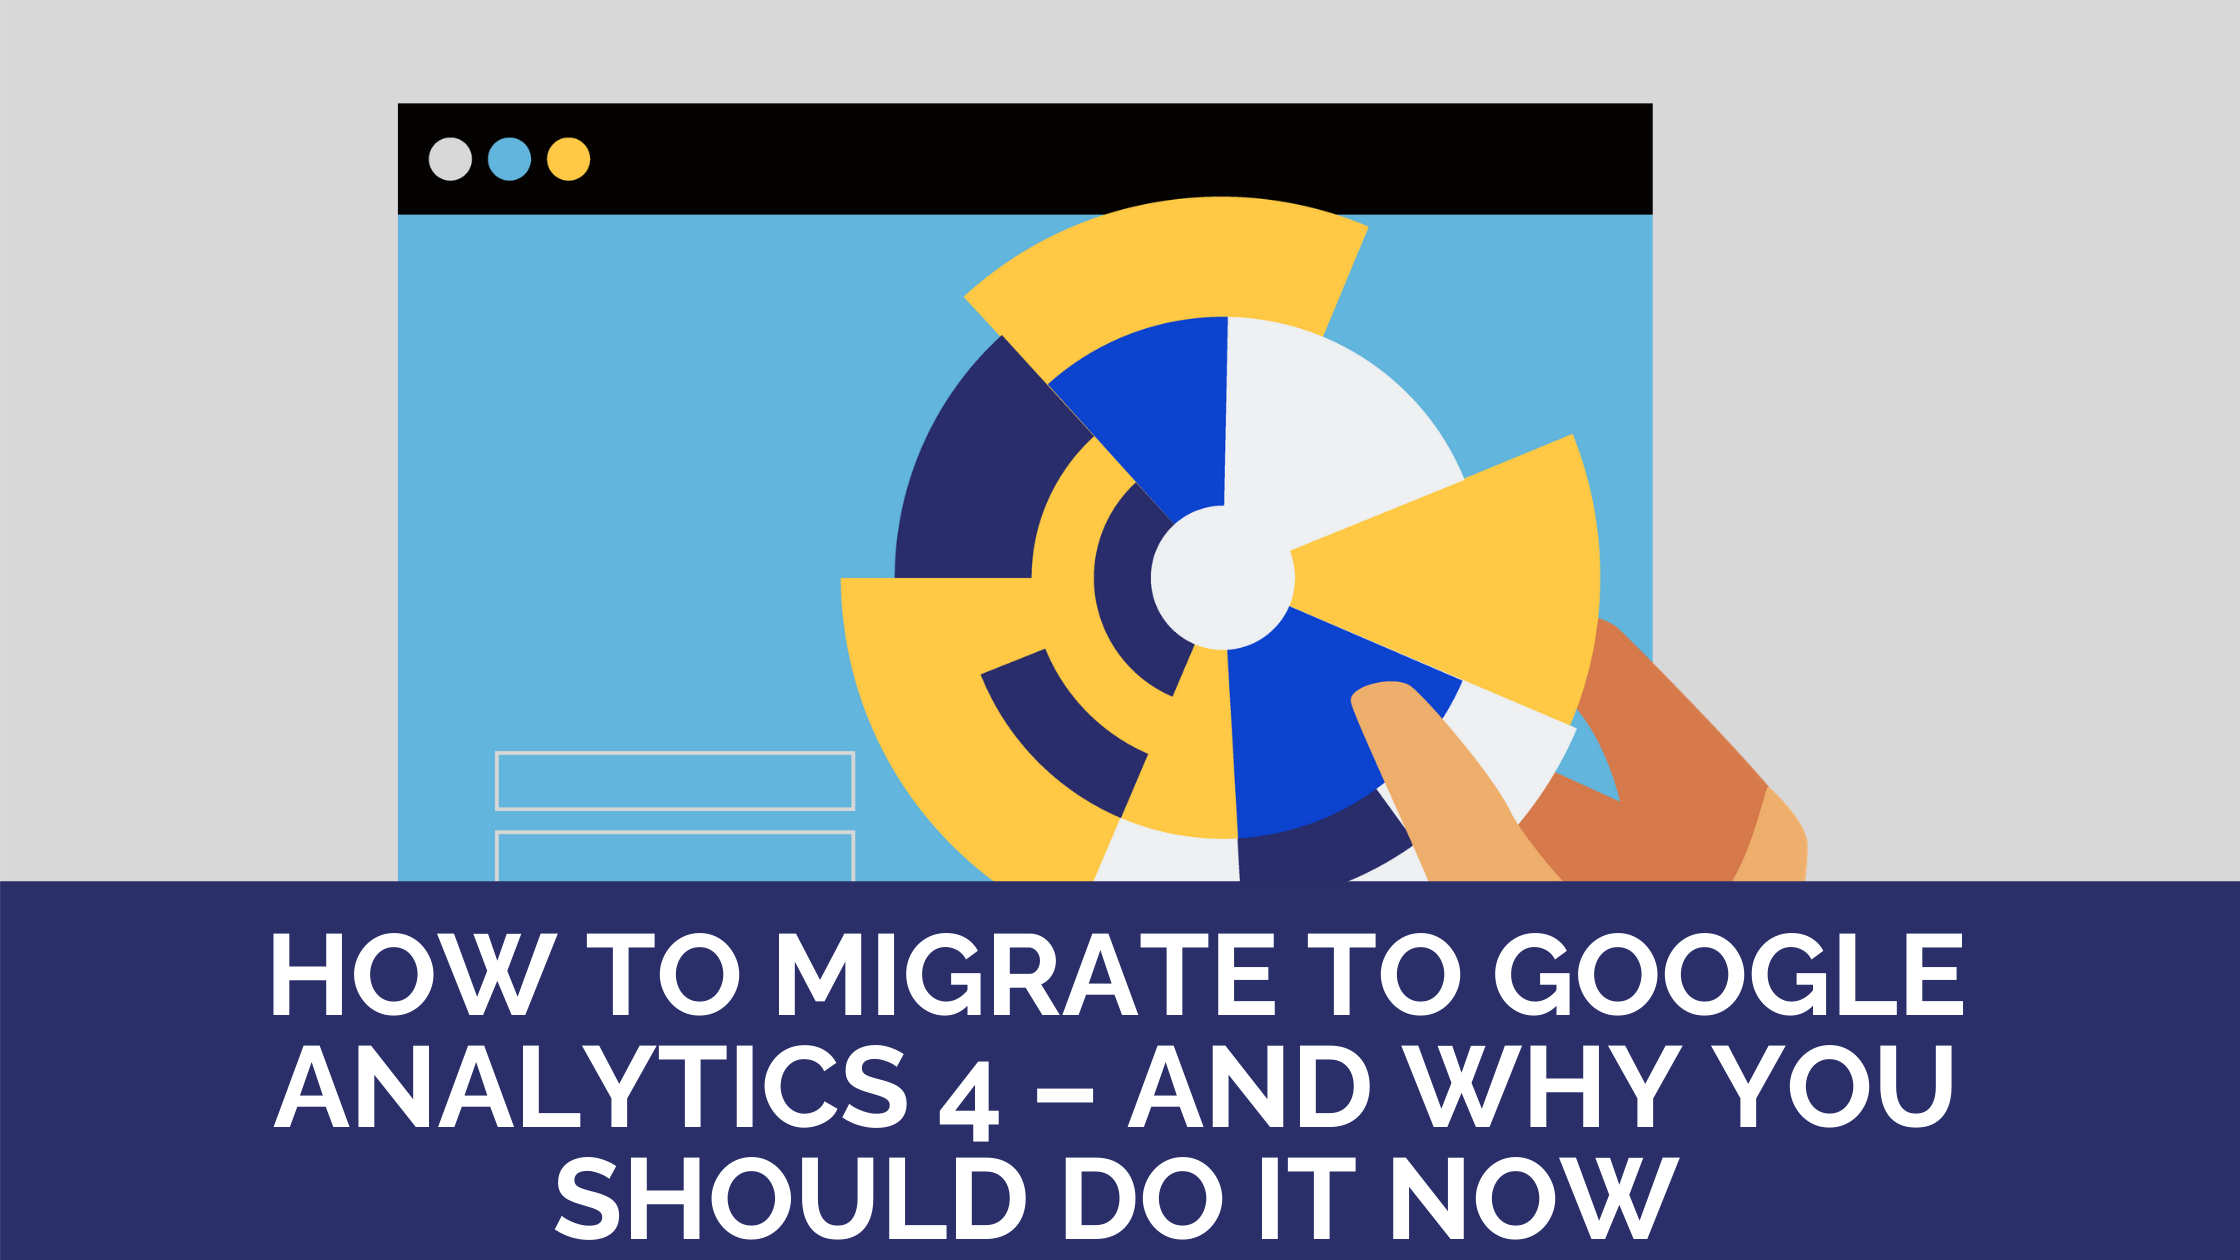 How to migrate to Google Analytics 4 - and why you should do it now